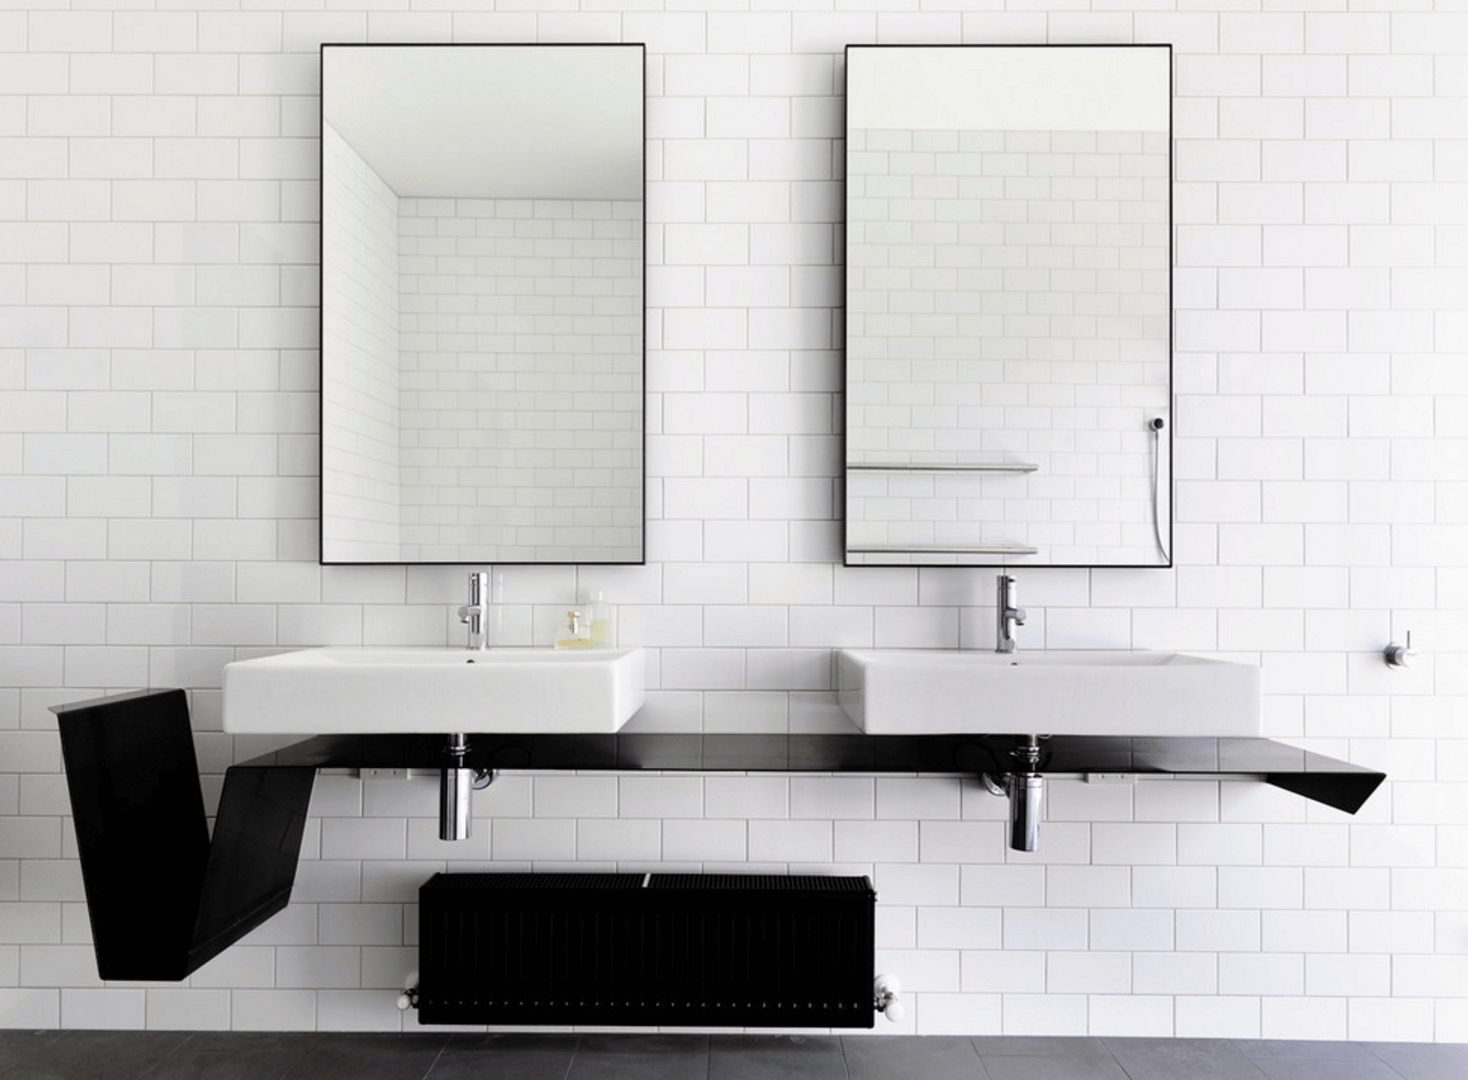 Vanity Mirrors For Bathroom 38 Bathroom Mirror Ideas to Reflect Your Style